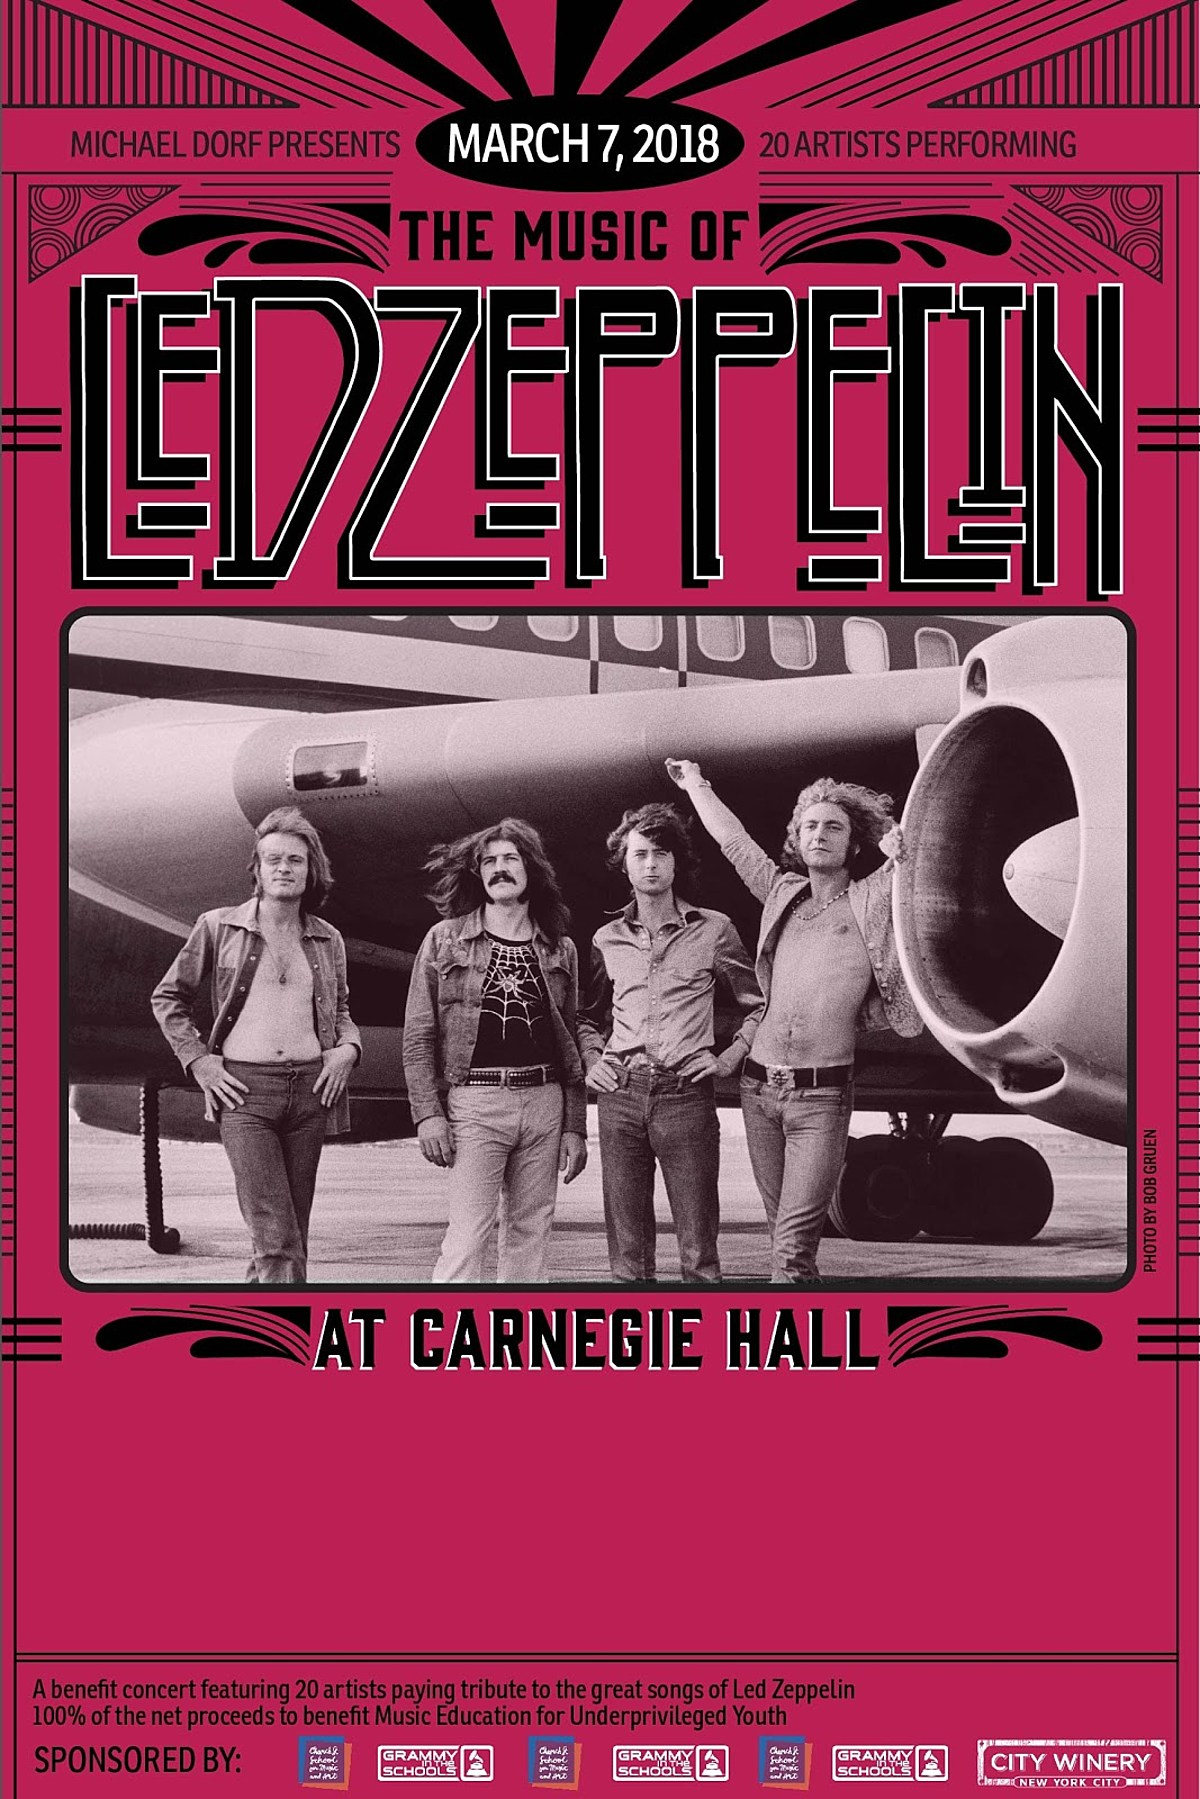 J Mascis, The Zombies, Bettye LaVette more playing Zeppelin tribute at Carnegie Hall